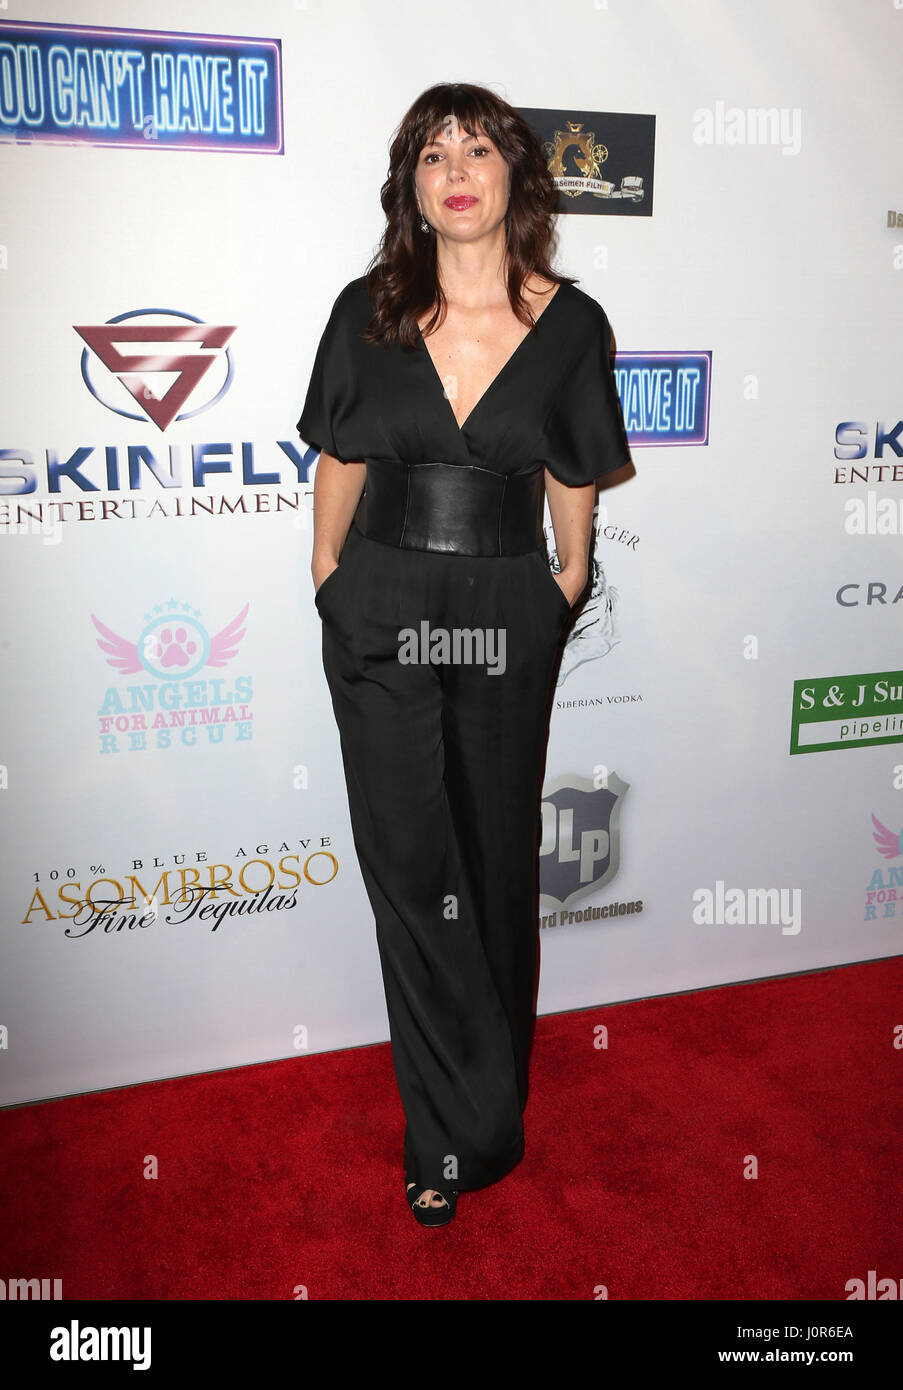 Premiere Of Skinfly Entertainment's 'You Can't Have It' - Arrivals  Featuring: Moniqua Plante Where: - Stock Image